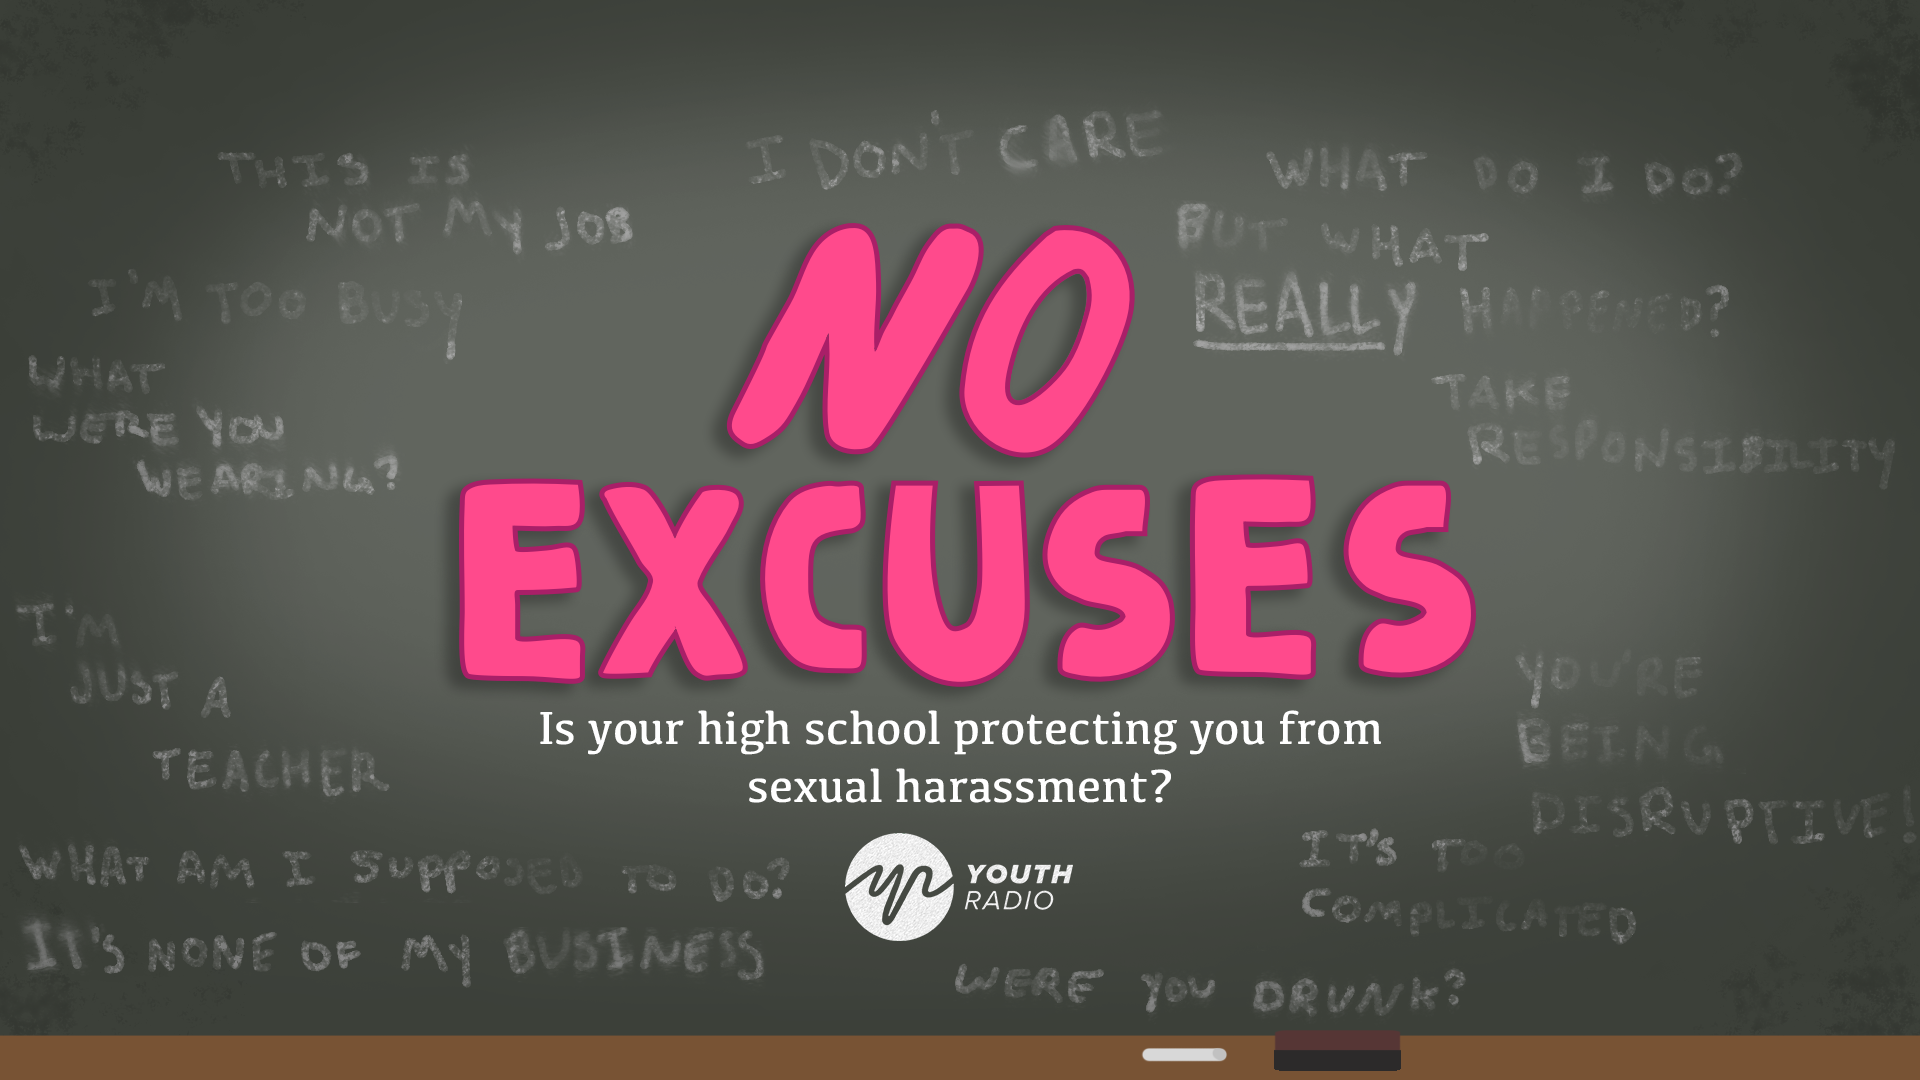 #MeToo Stories Happen in High Schools Too — This Quiz Shows How Yours Should Help